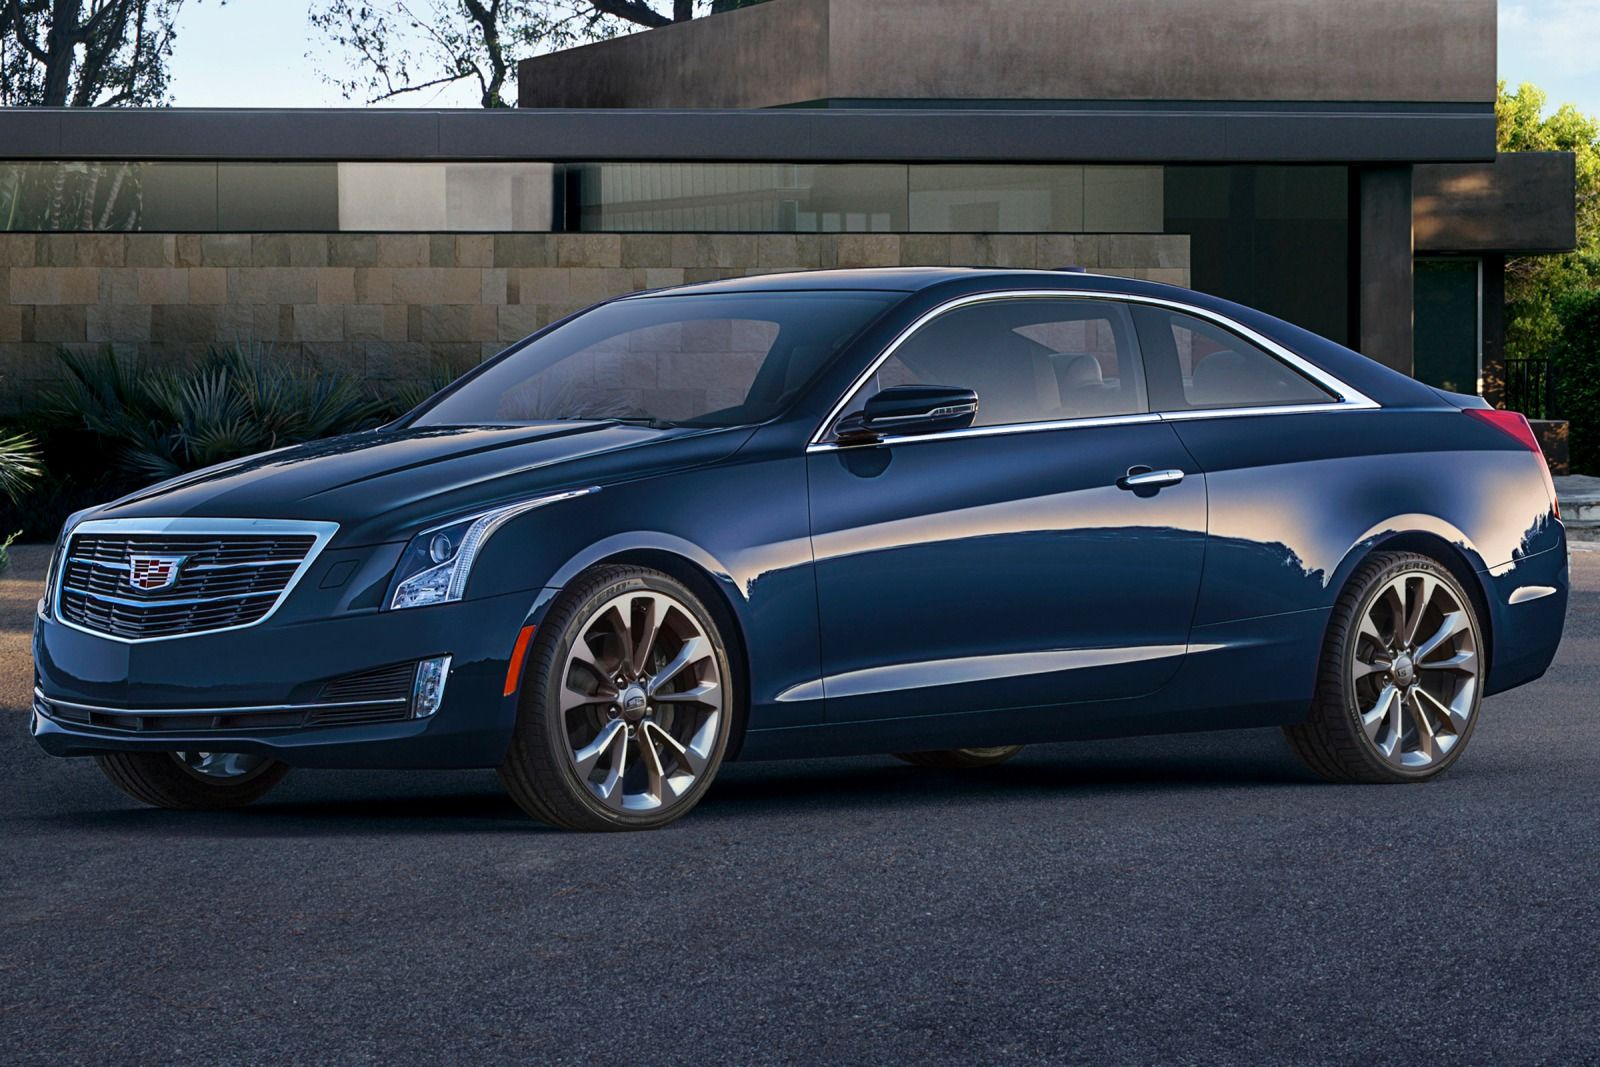 2015 Cadillac Dts - pictures, information and specs - Auto ...